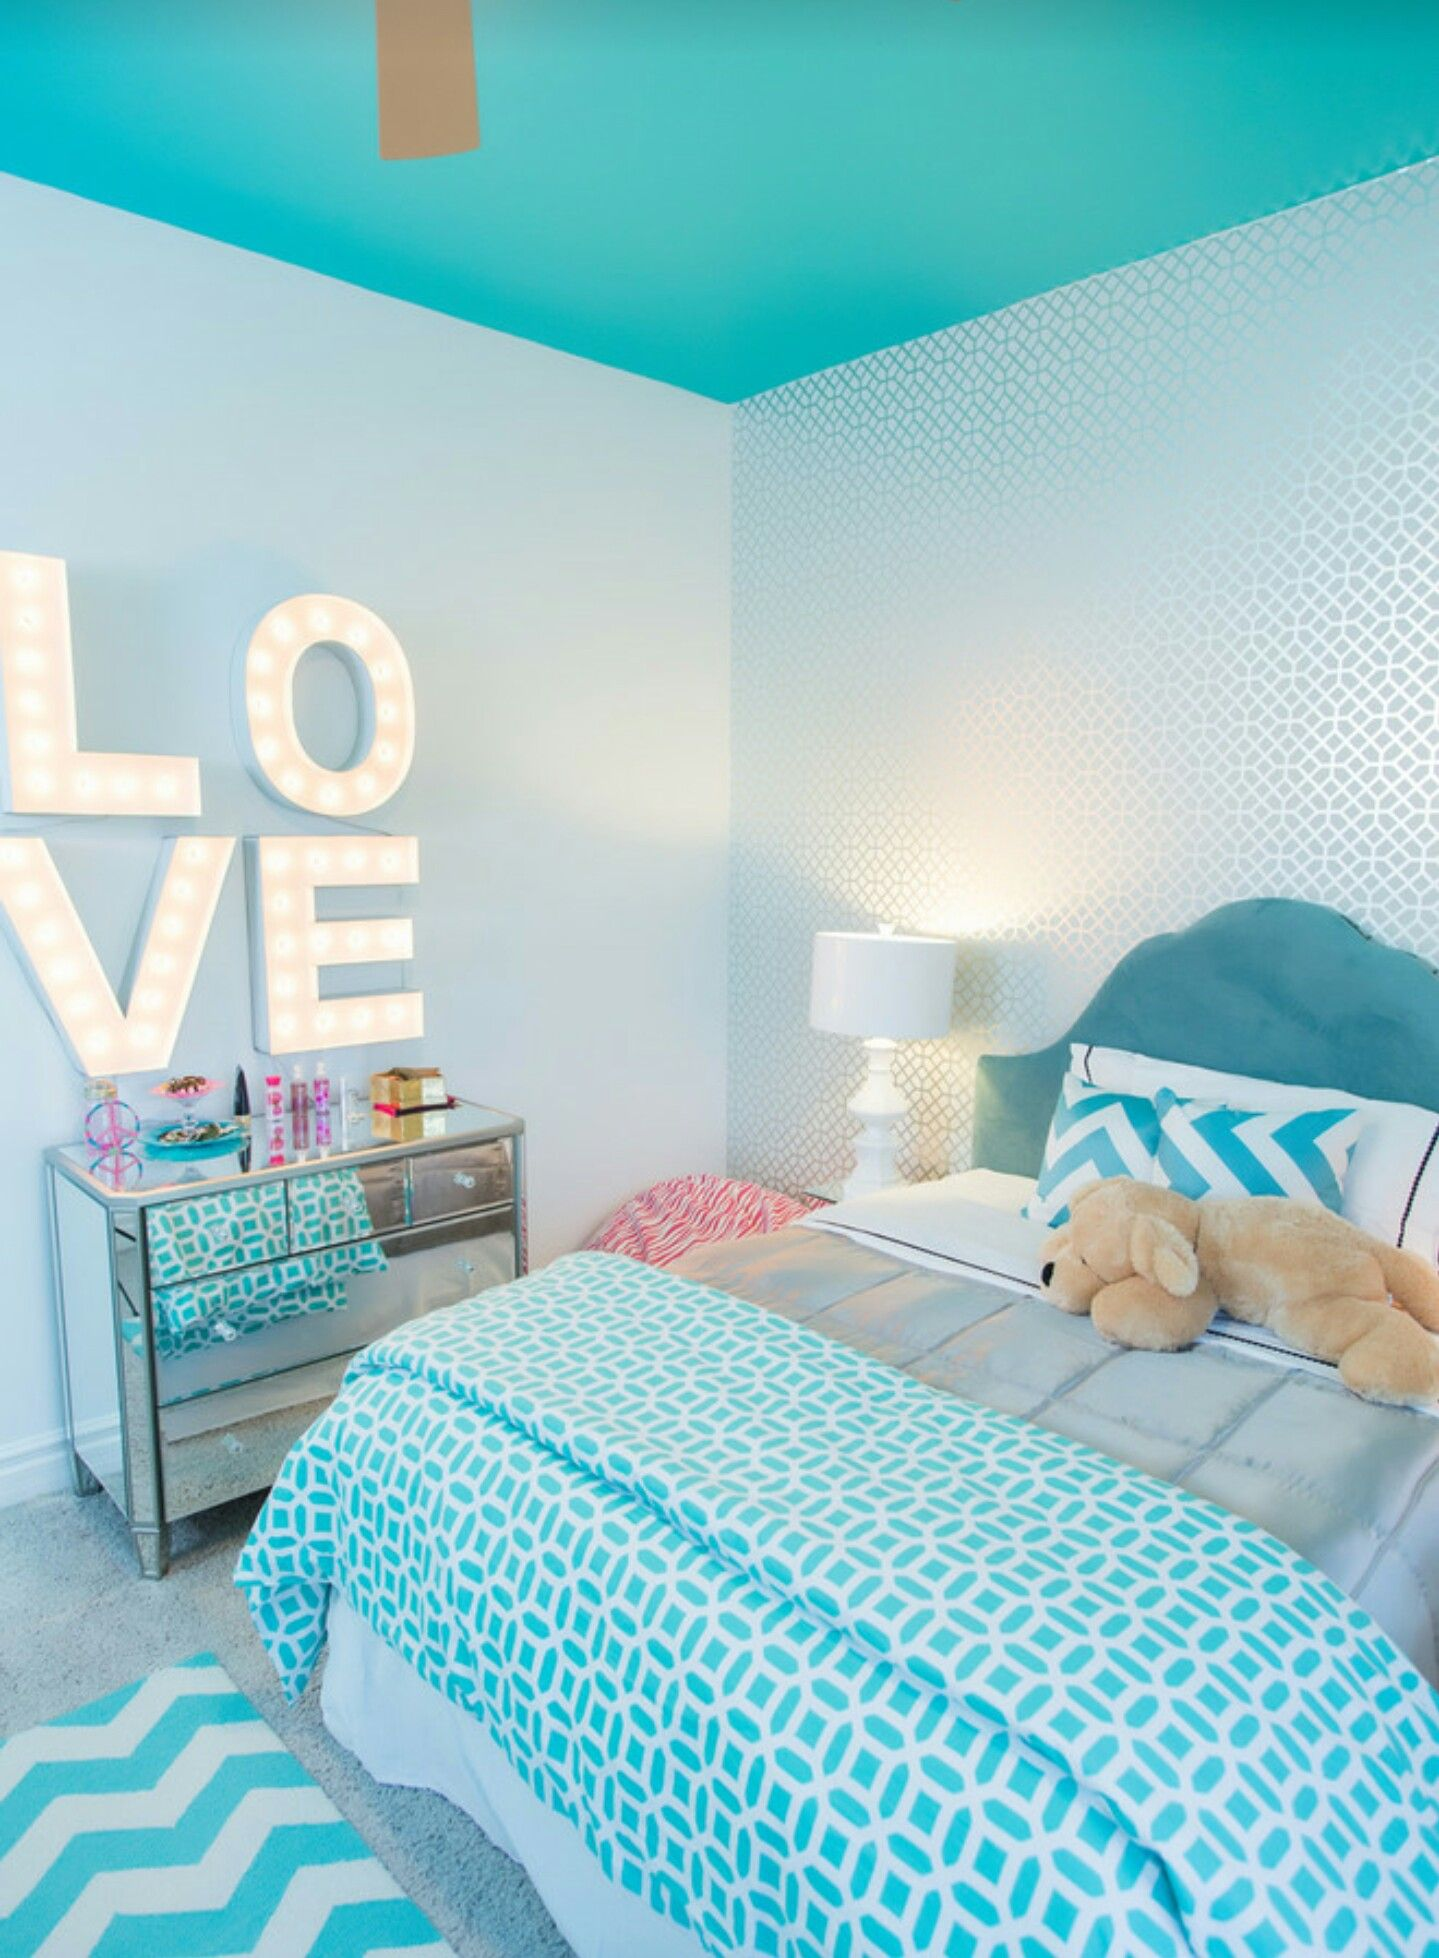 51 Stunning Turquoise Room Ideas to Freshen Up Your Home  Architecture Inspiration  Girl